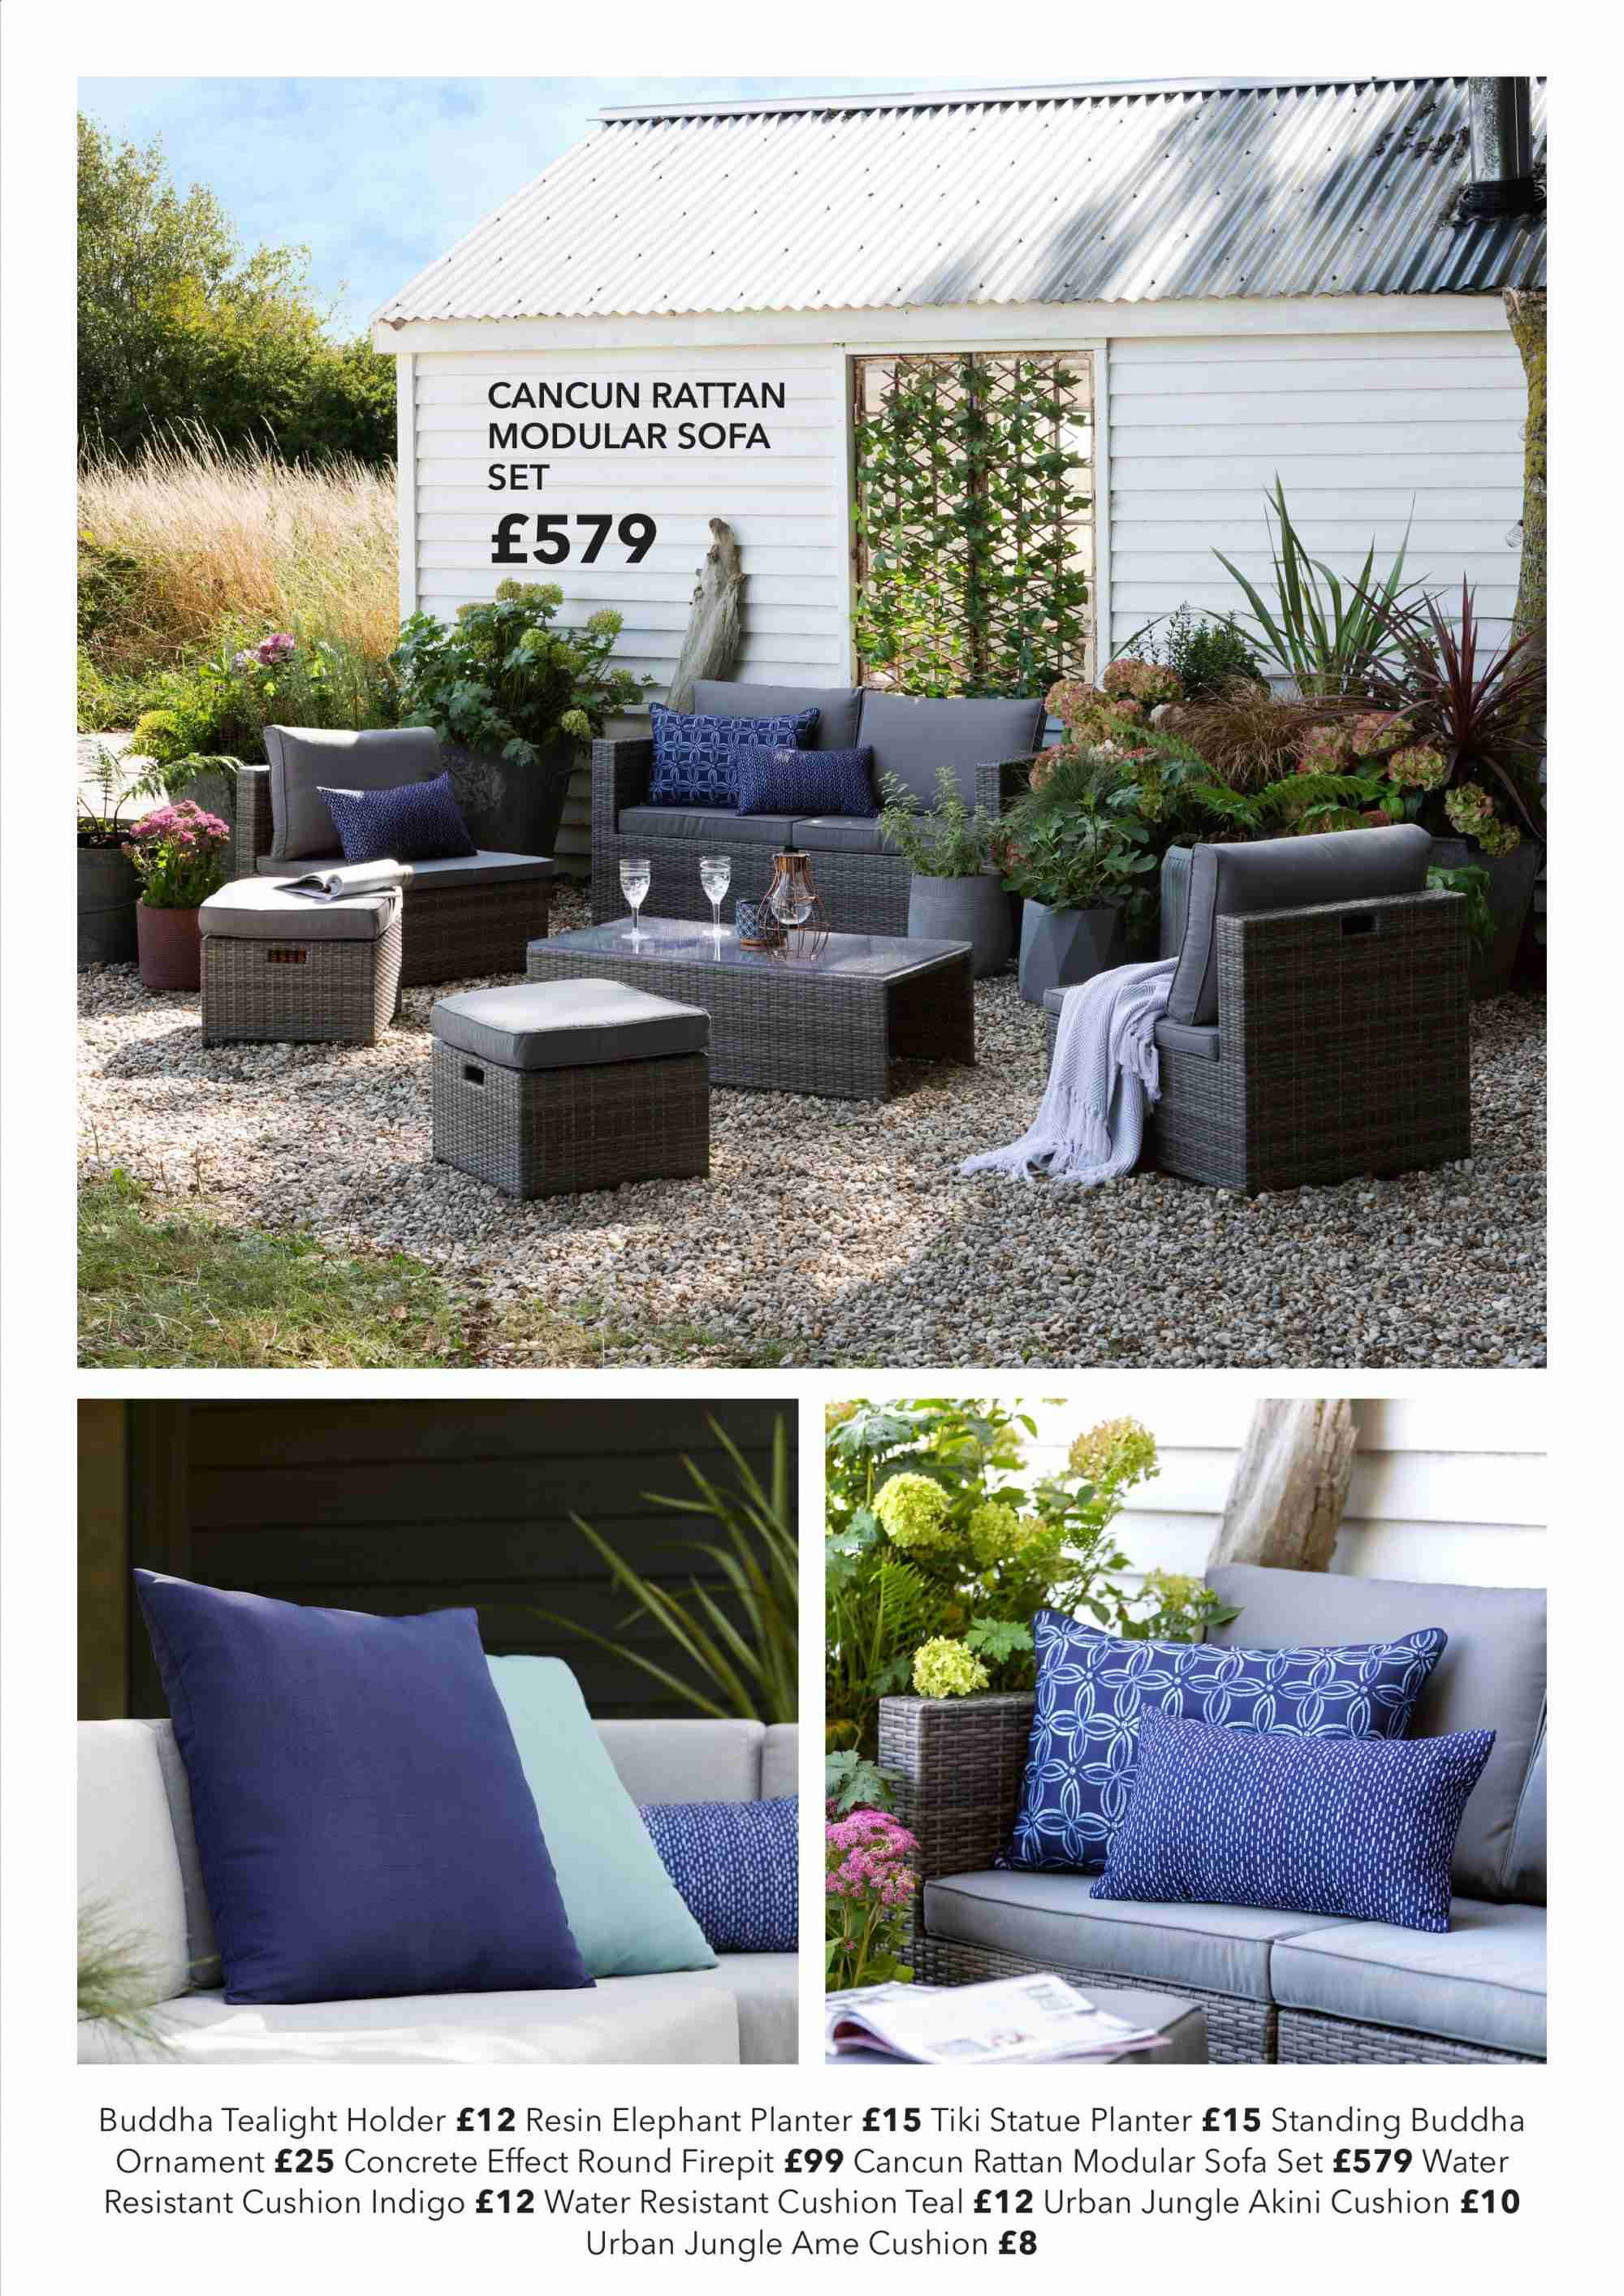 Dunelm offer  - Sales products - cushion, elephant, sofa, holder, ornament, water resistant. Page 17.